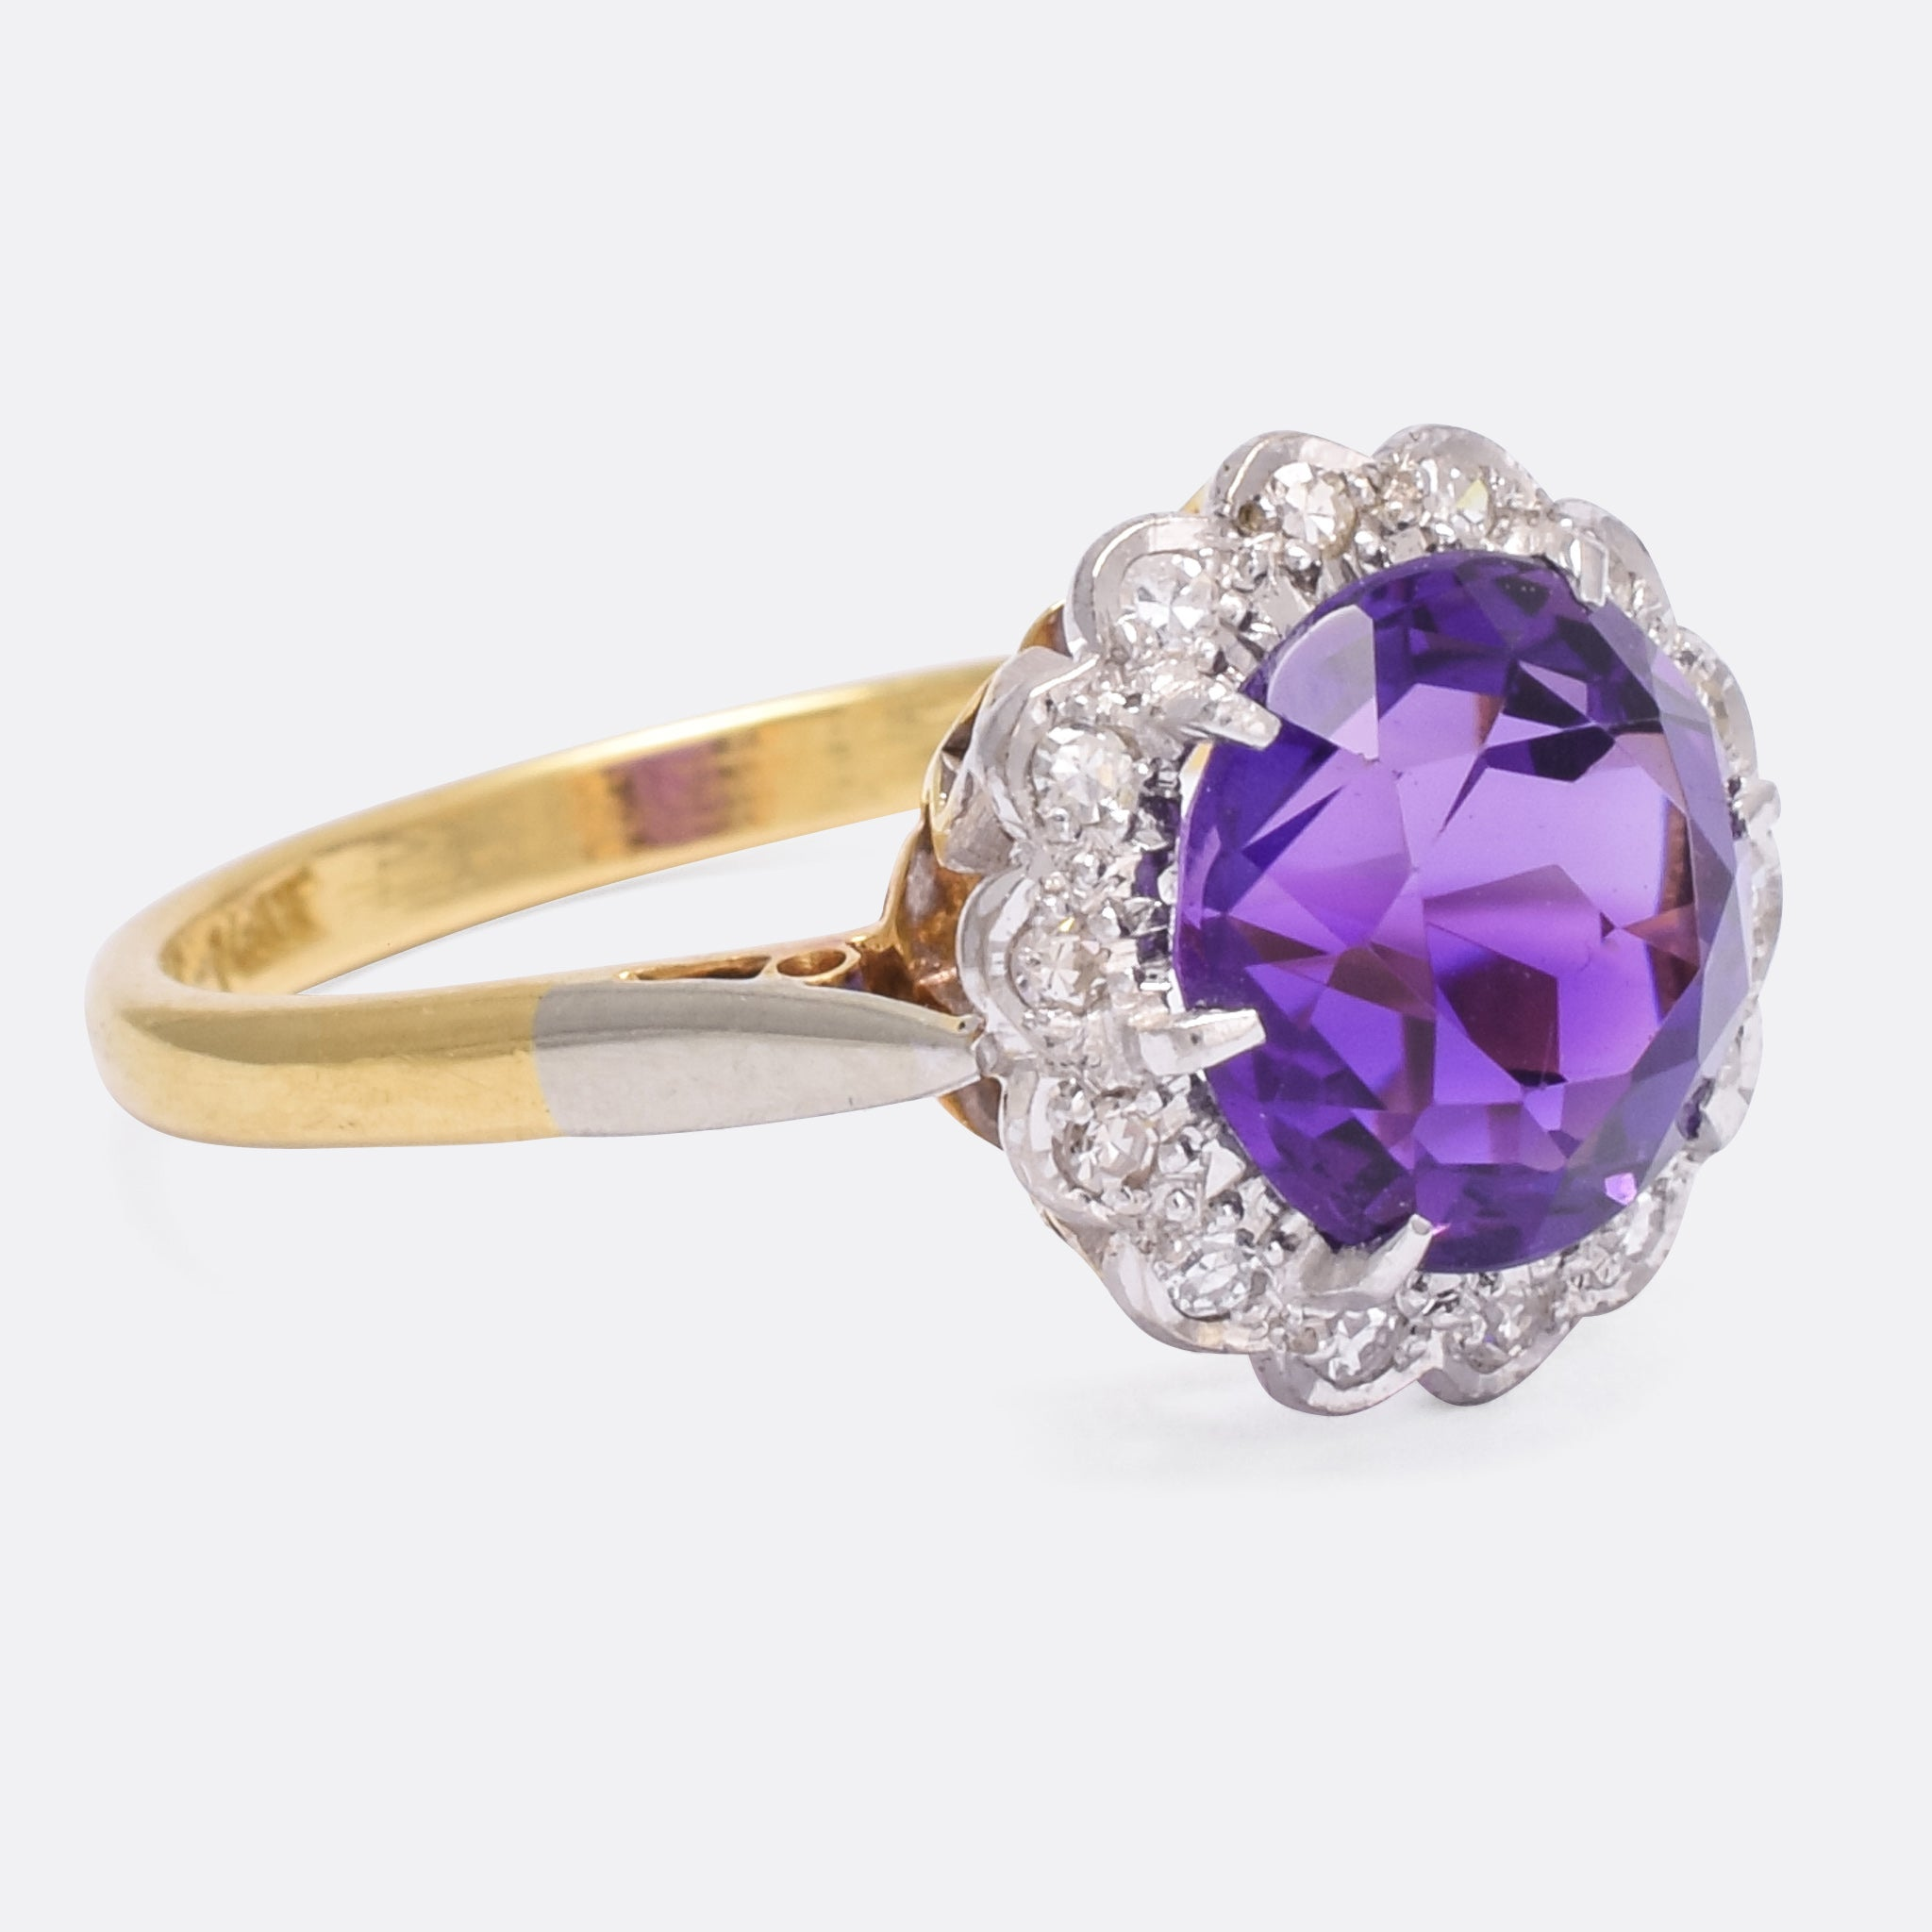 gemstone categories color diamond ring on product rings oval collections inc jupiter jewelry sku tags amethist engagement amethyst shing white gold tf